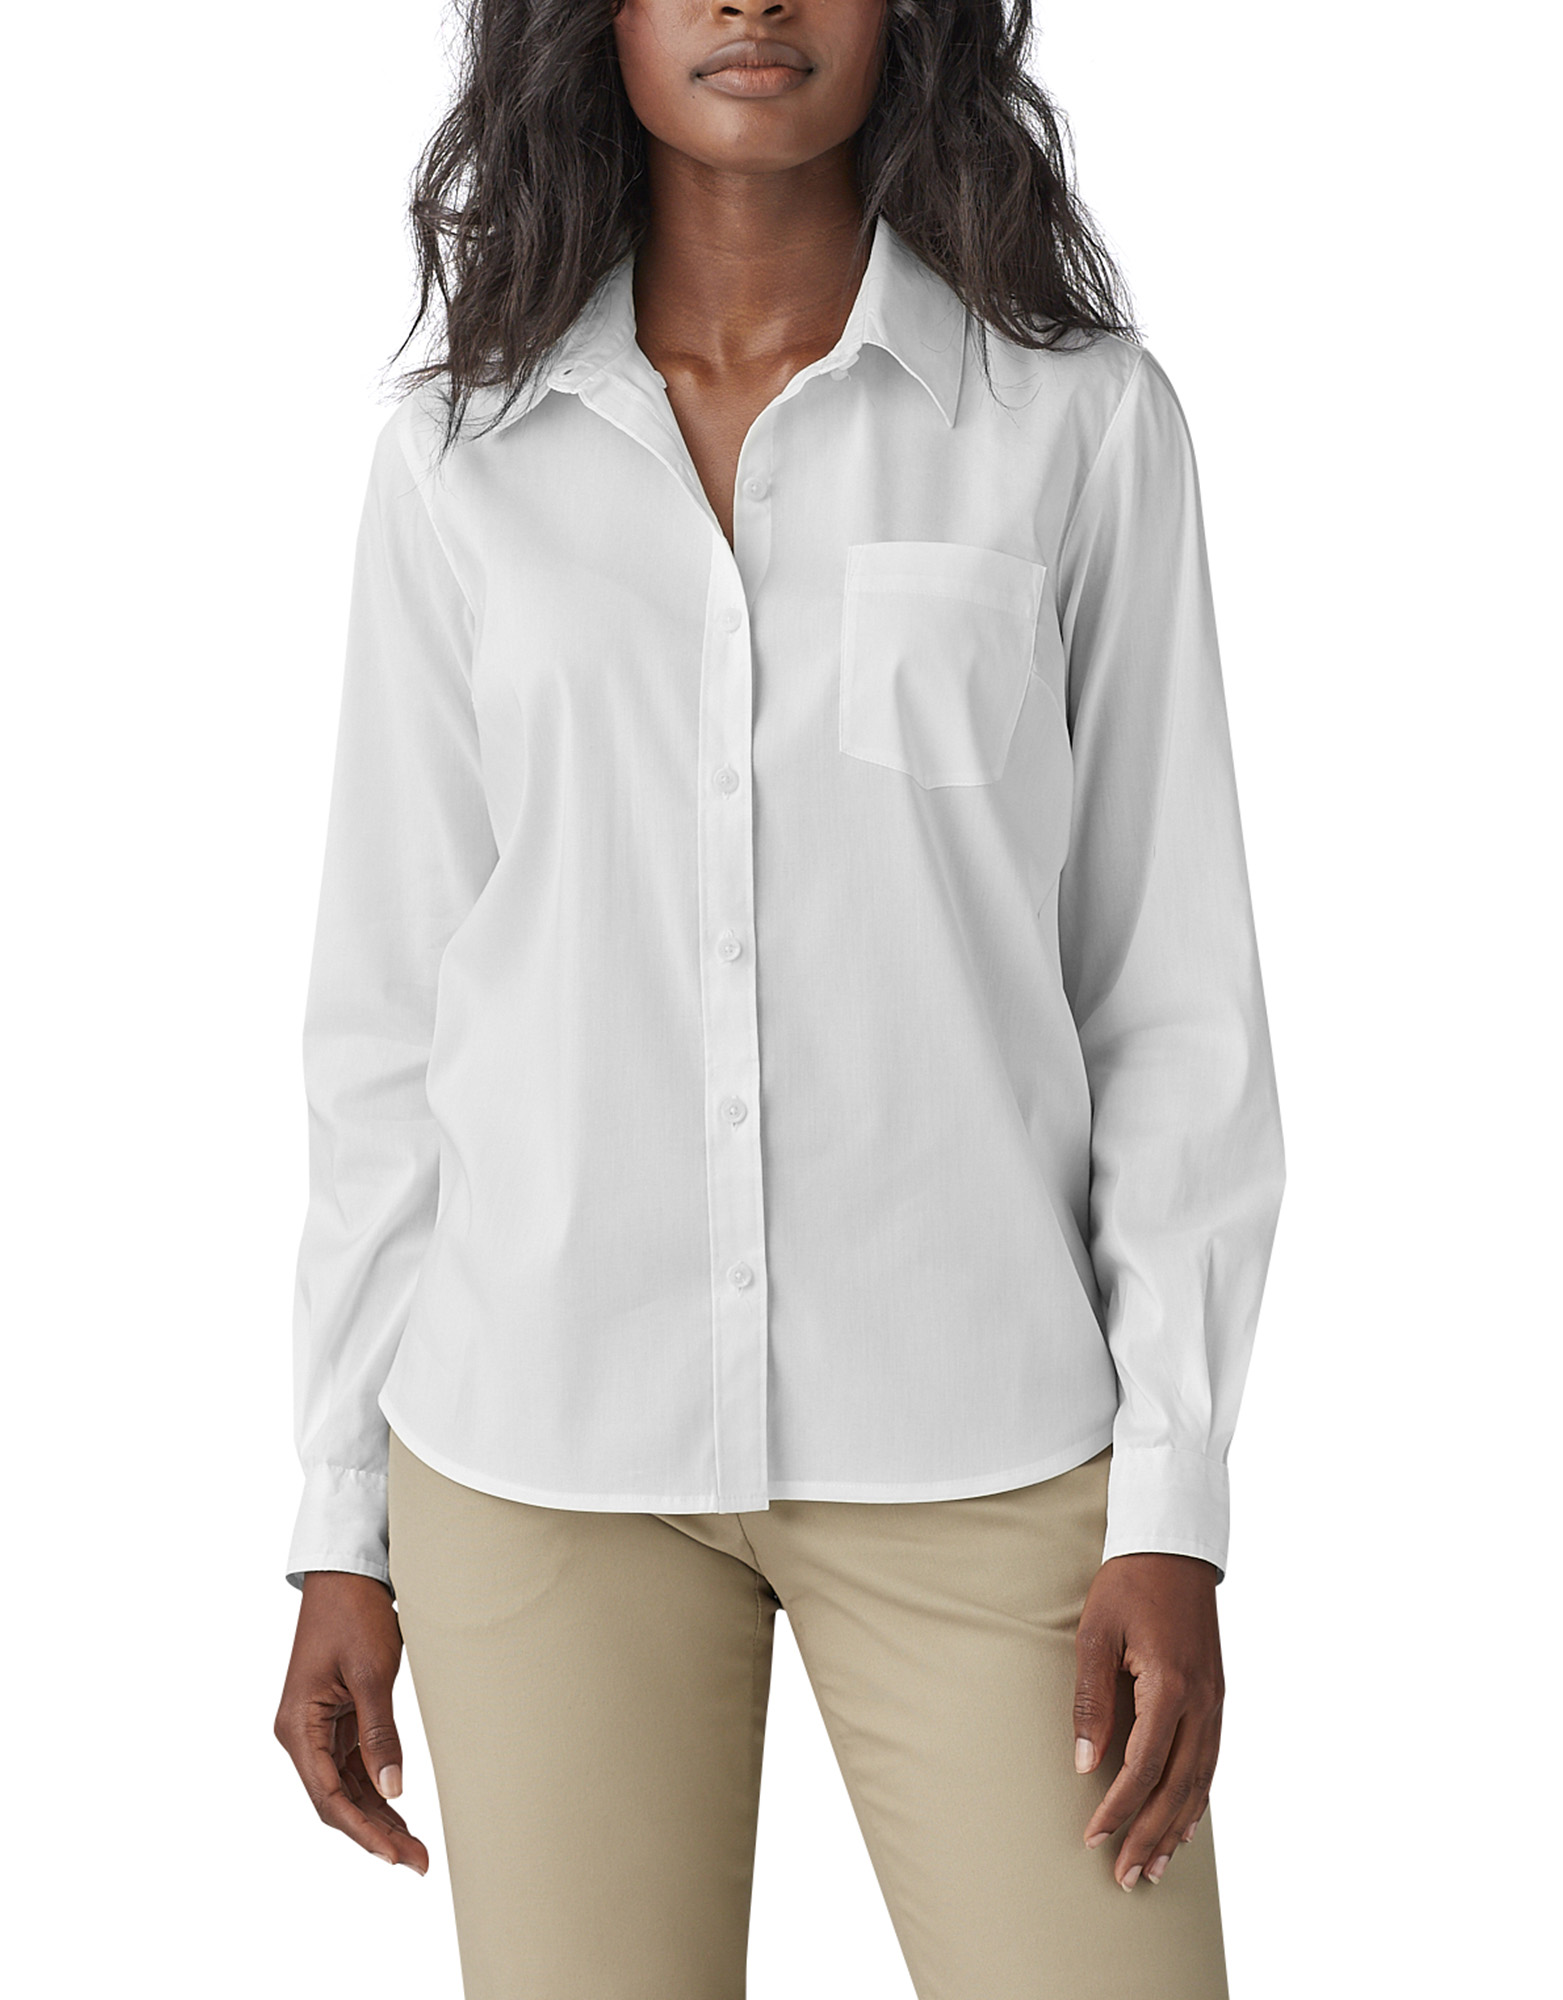 Women's Long Sleeve Poplin Stretch Work Shirt - White (WH)